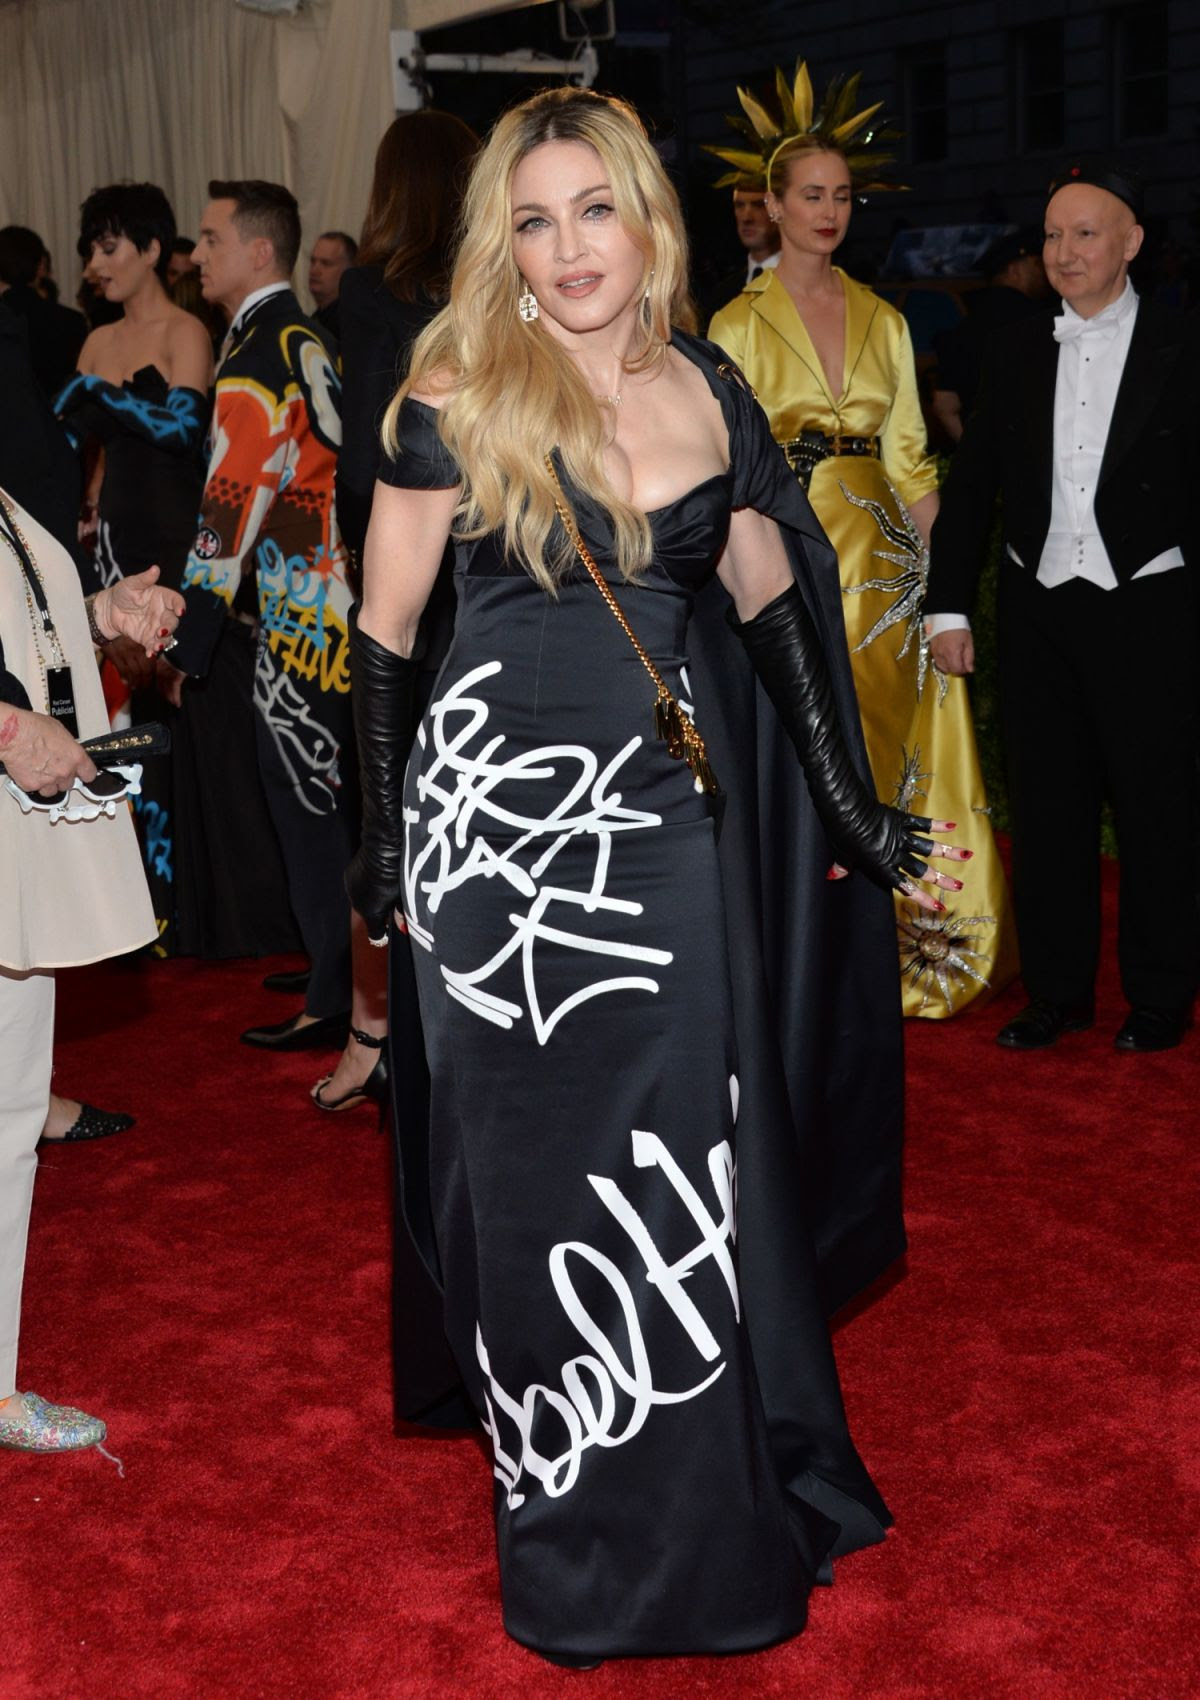 MADONNA at MET Gala 2015 in New York